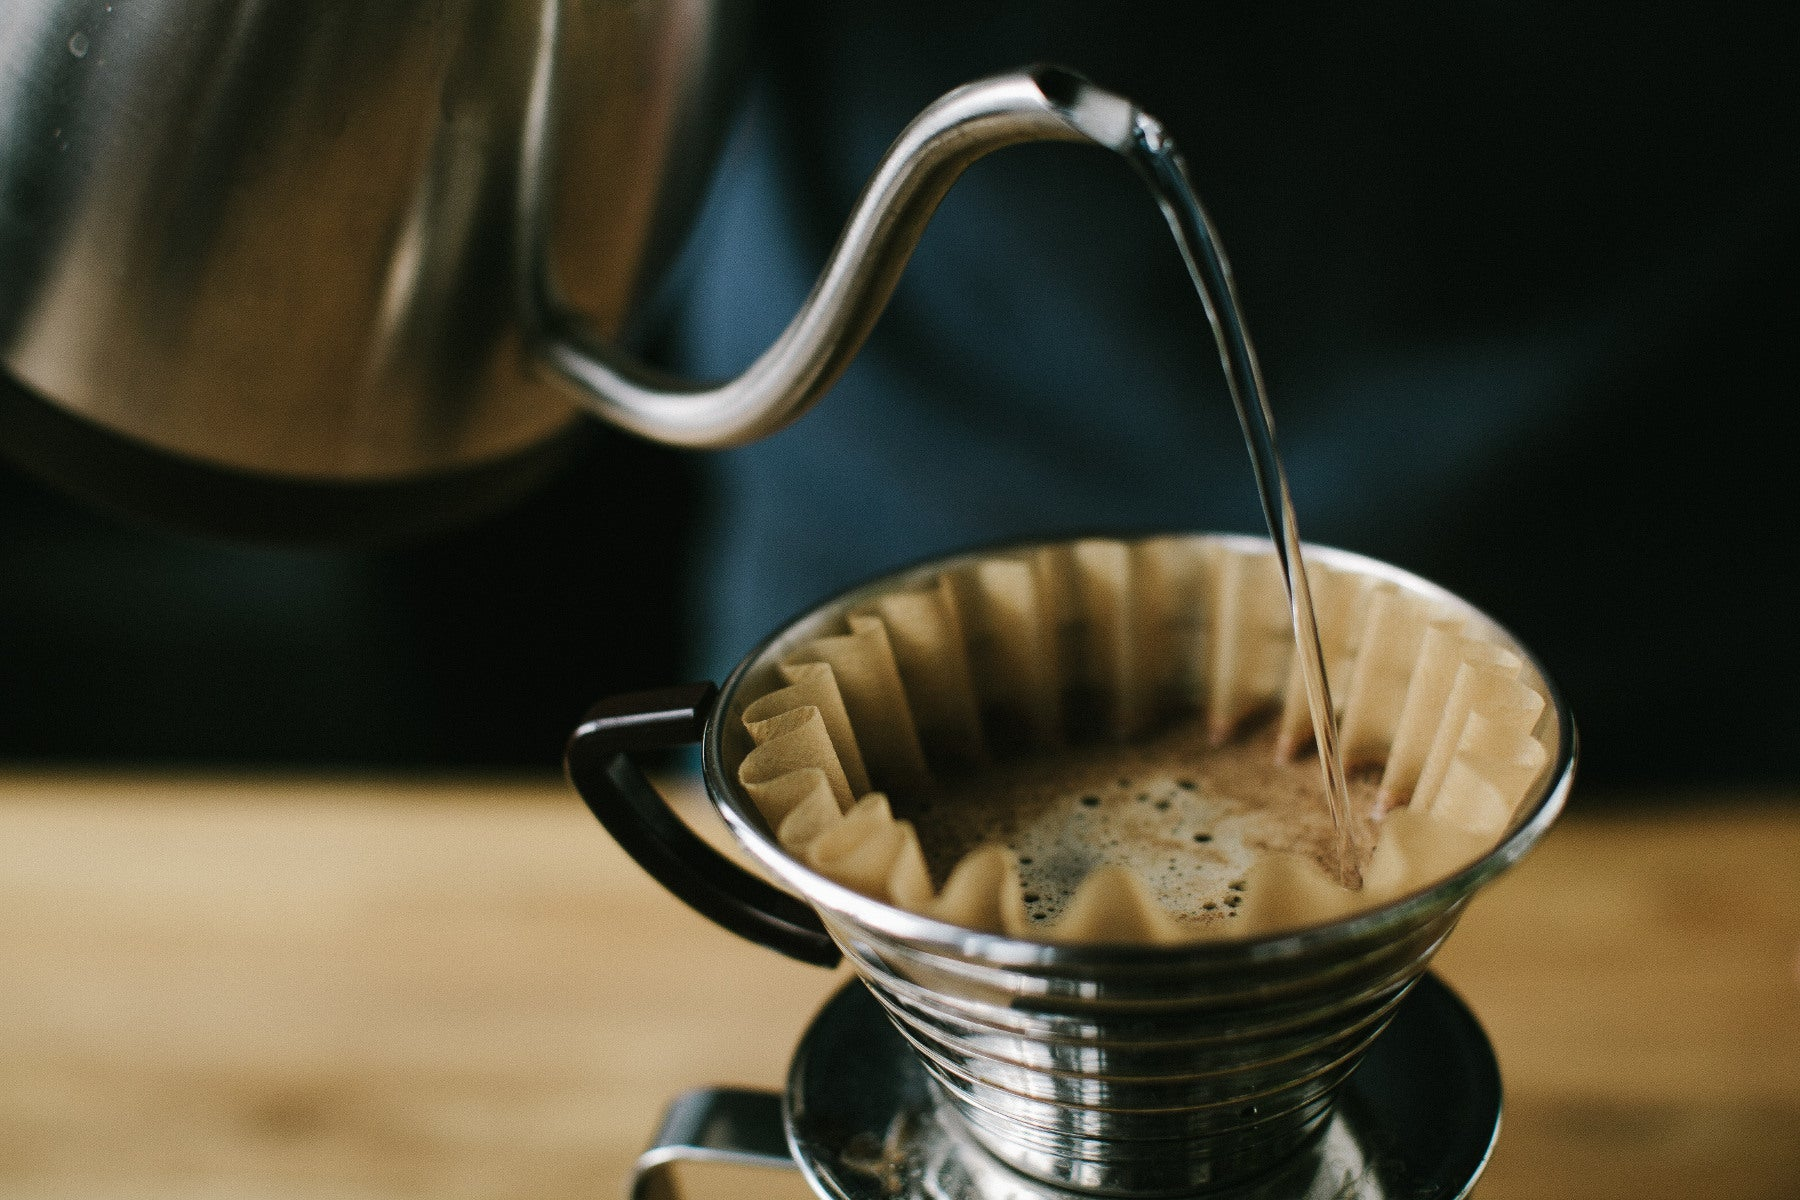 How to brew great coffee!